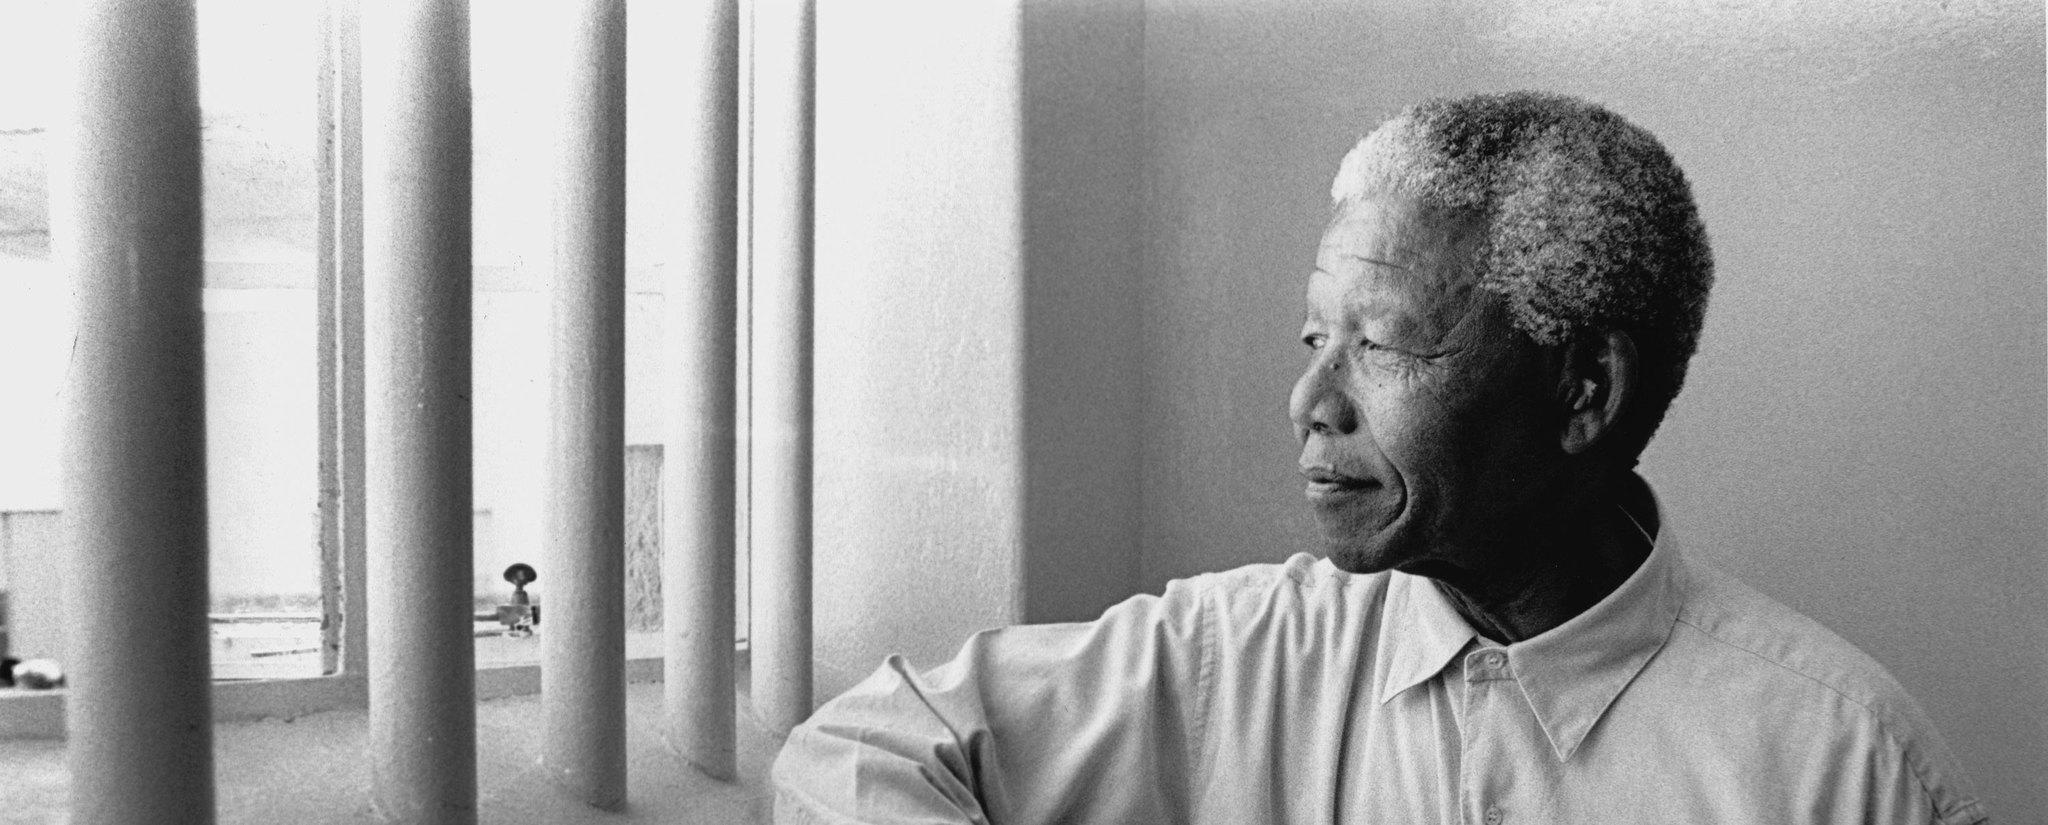 the account of apartheid in south africa and the making of nelson mandela Often called the mother of the nation and mama winnie, madikizela-mandela fought to keep south africa's anti-apartheid struggle in the international spotlight while her husband, nelson mandela, was imprisoned.